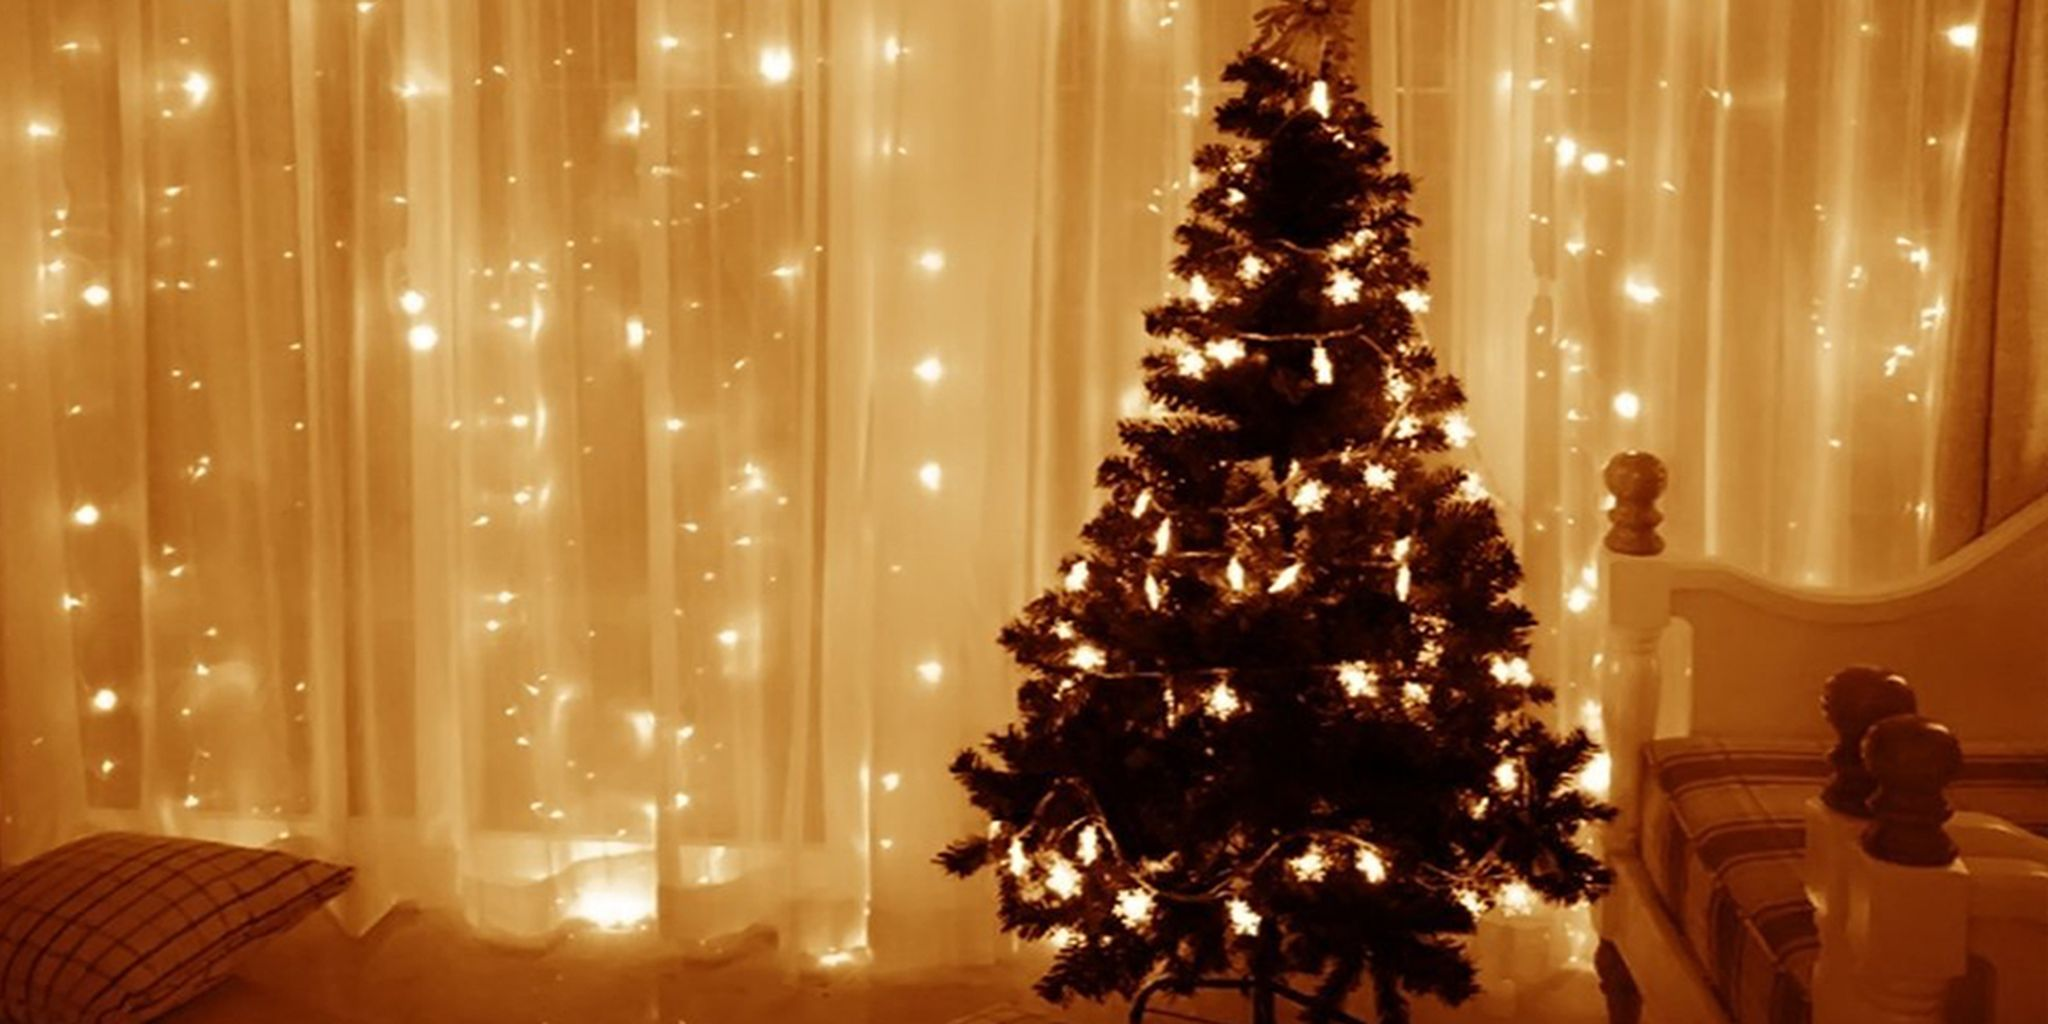 Make A Magical Wall Of Holiday Glow With These 19 Light Curtains The Daily Dot